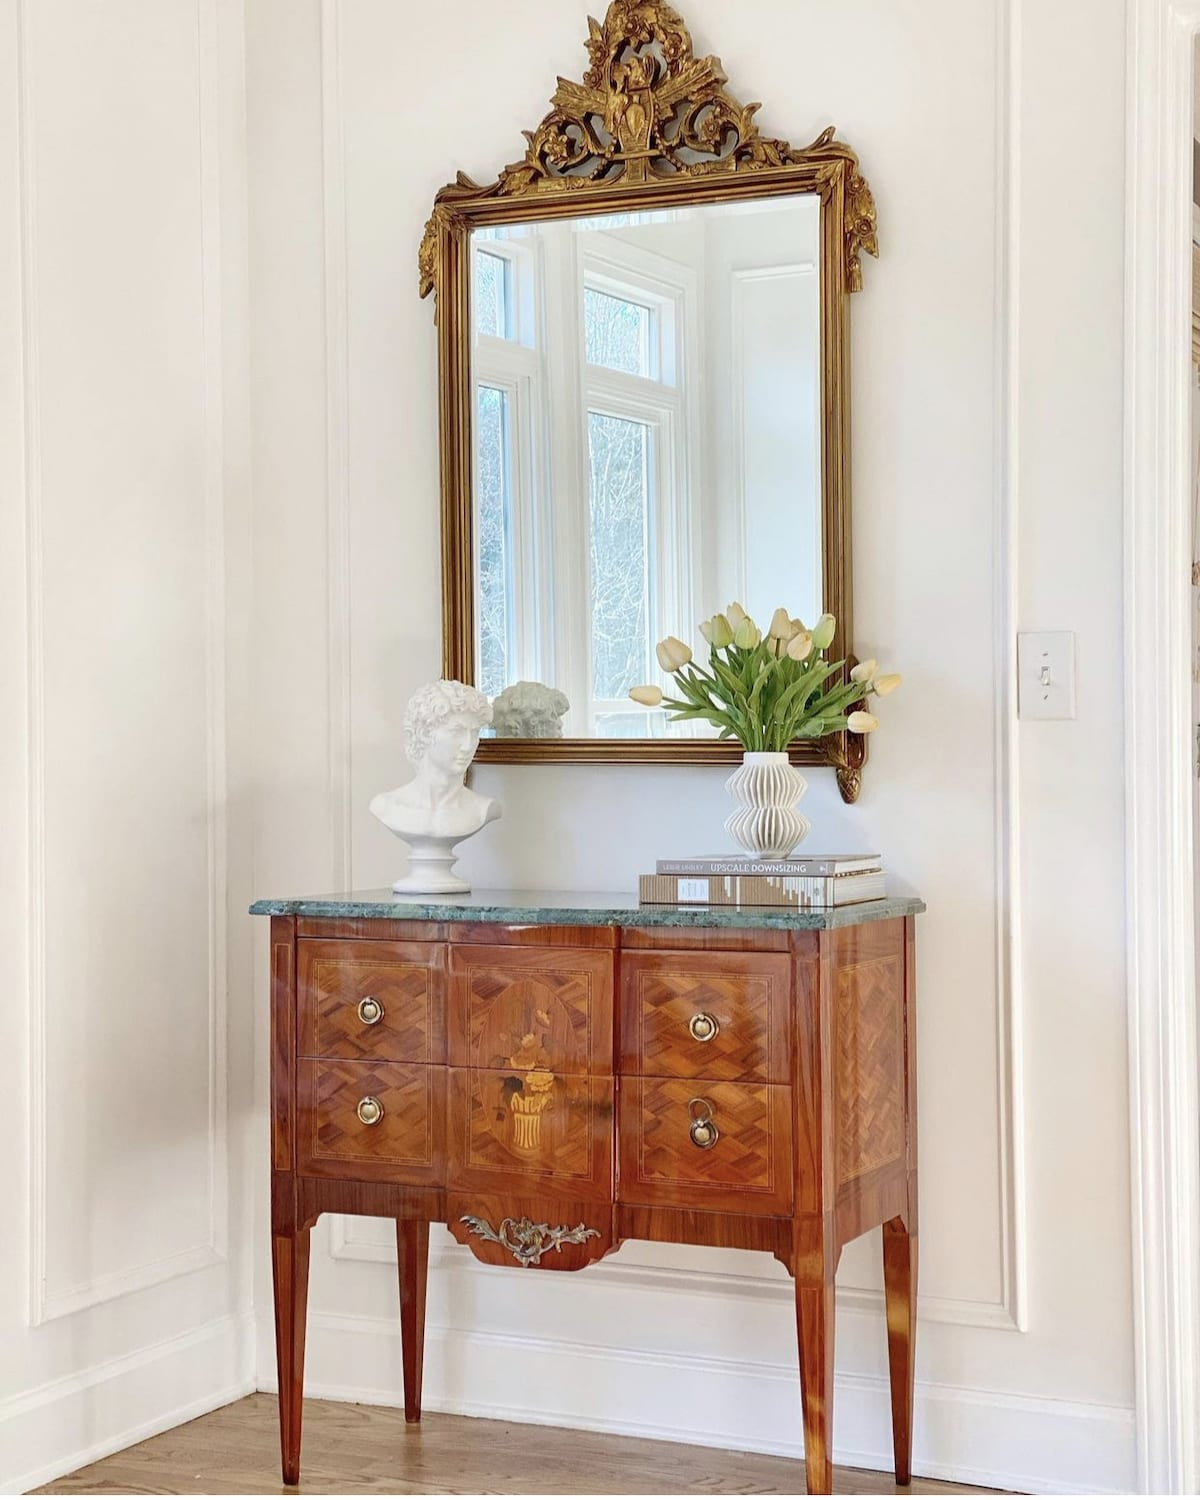 French mirror and cabinet